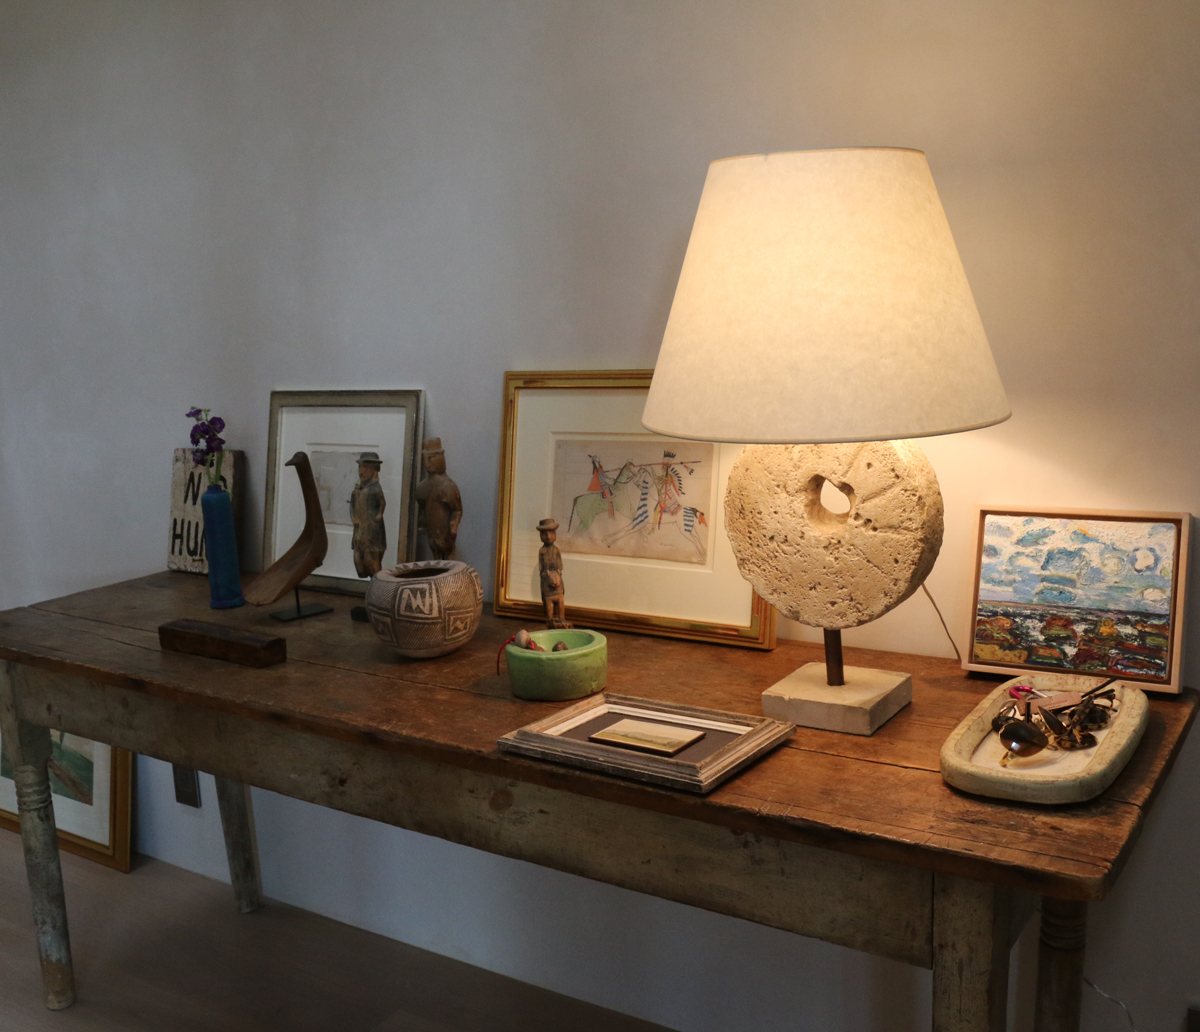 Vignette with urn table lamp